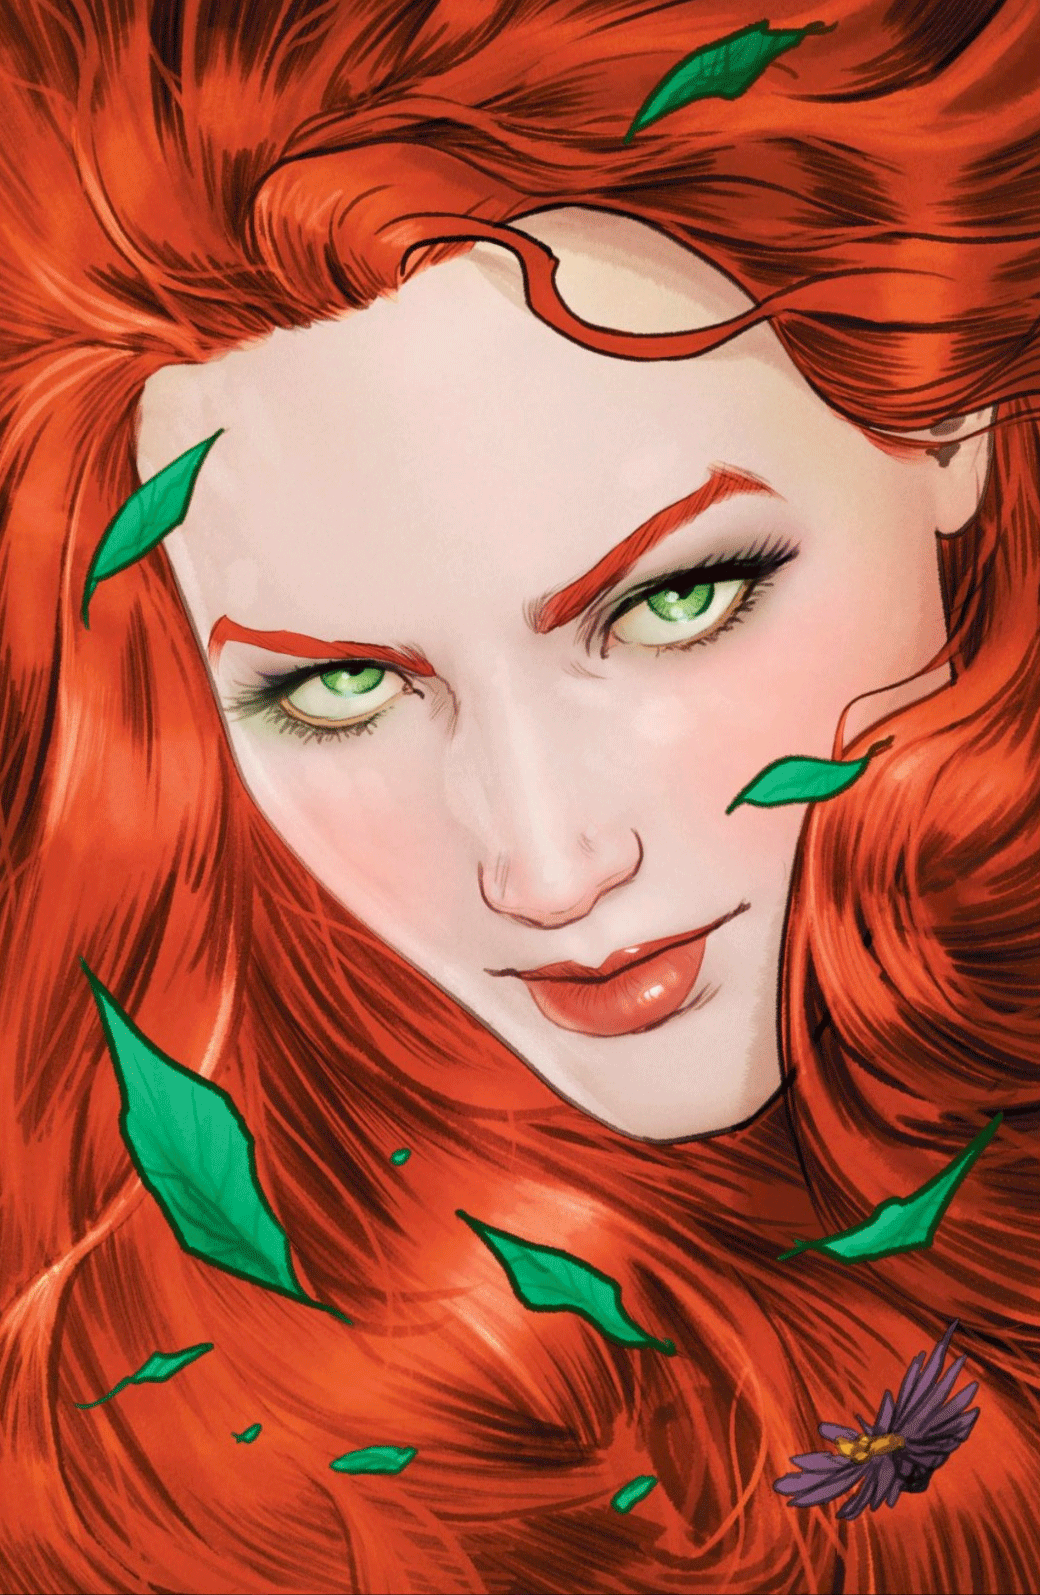 Full page art of Poison Ivy: red fiery hair, windswept.